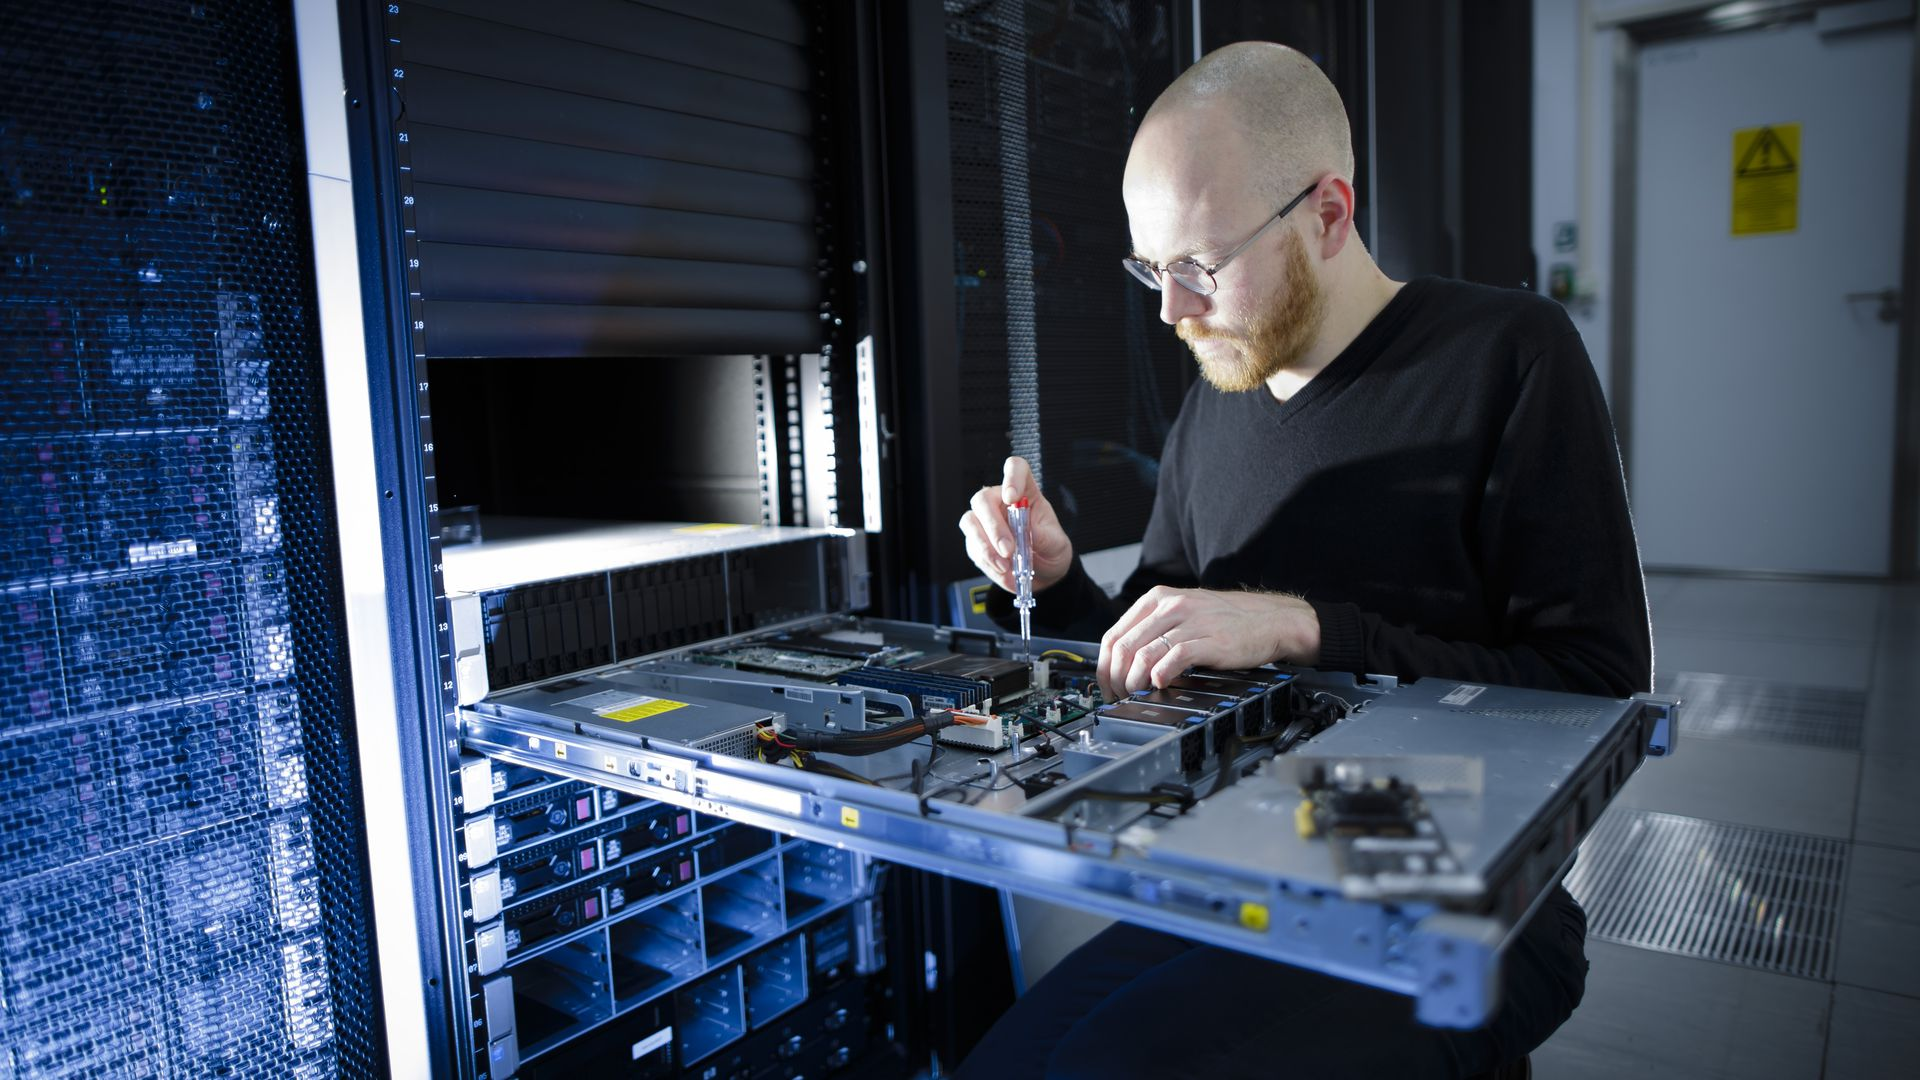 A man unscrews a server part in a data center.